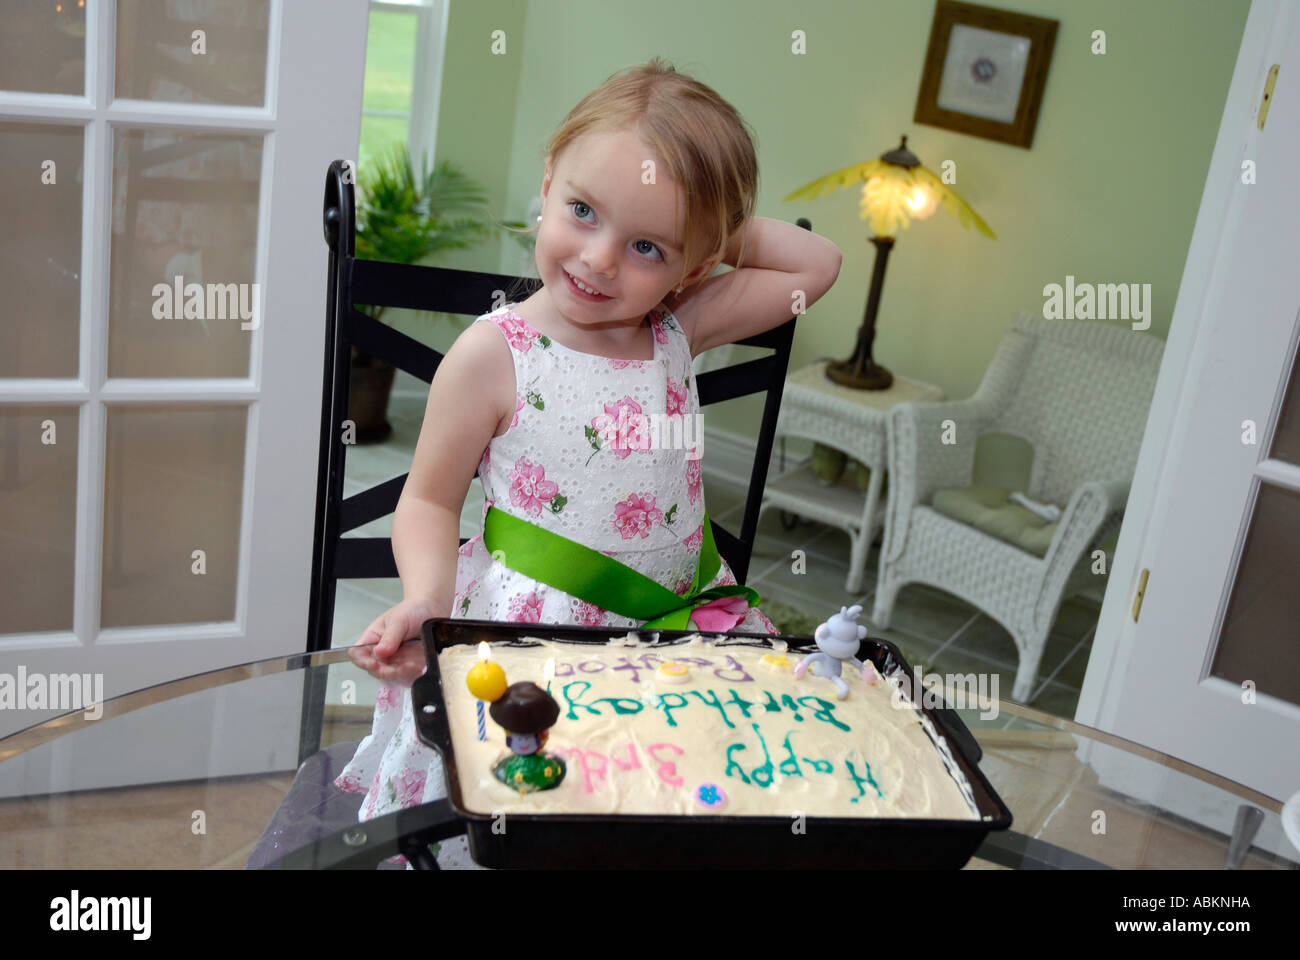 Amazing 3 Year Old Girl Celebrates Her Birthday With A Cake With Candles Funny Birthday Cards Online Overcheapnameinfo